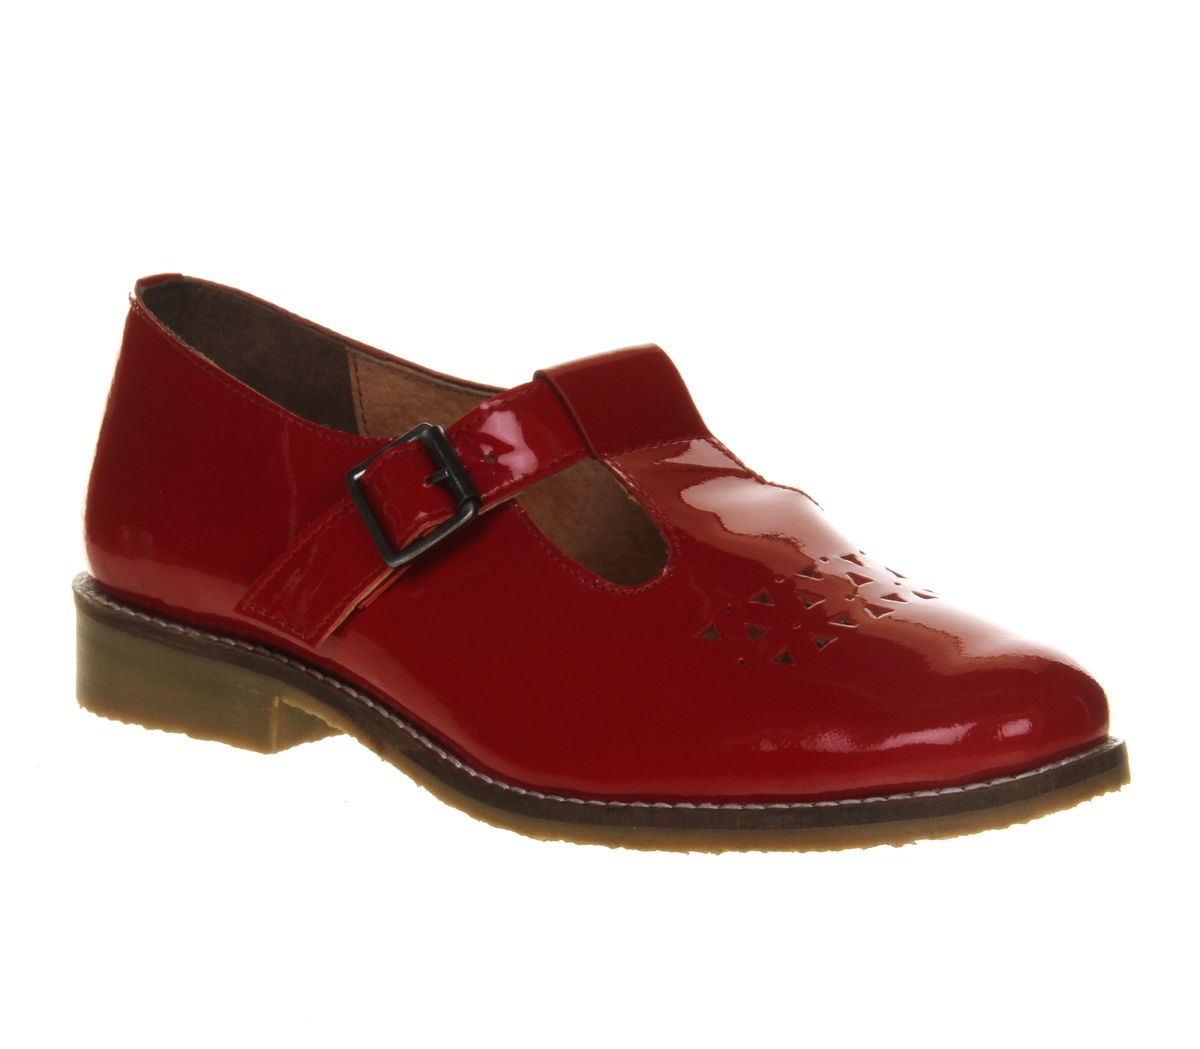 Office Paintbox Tbar Red Patent Leather Flats